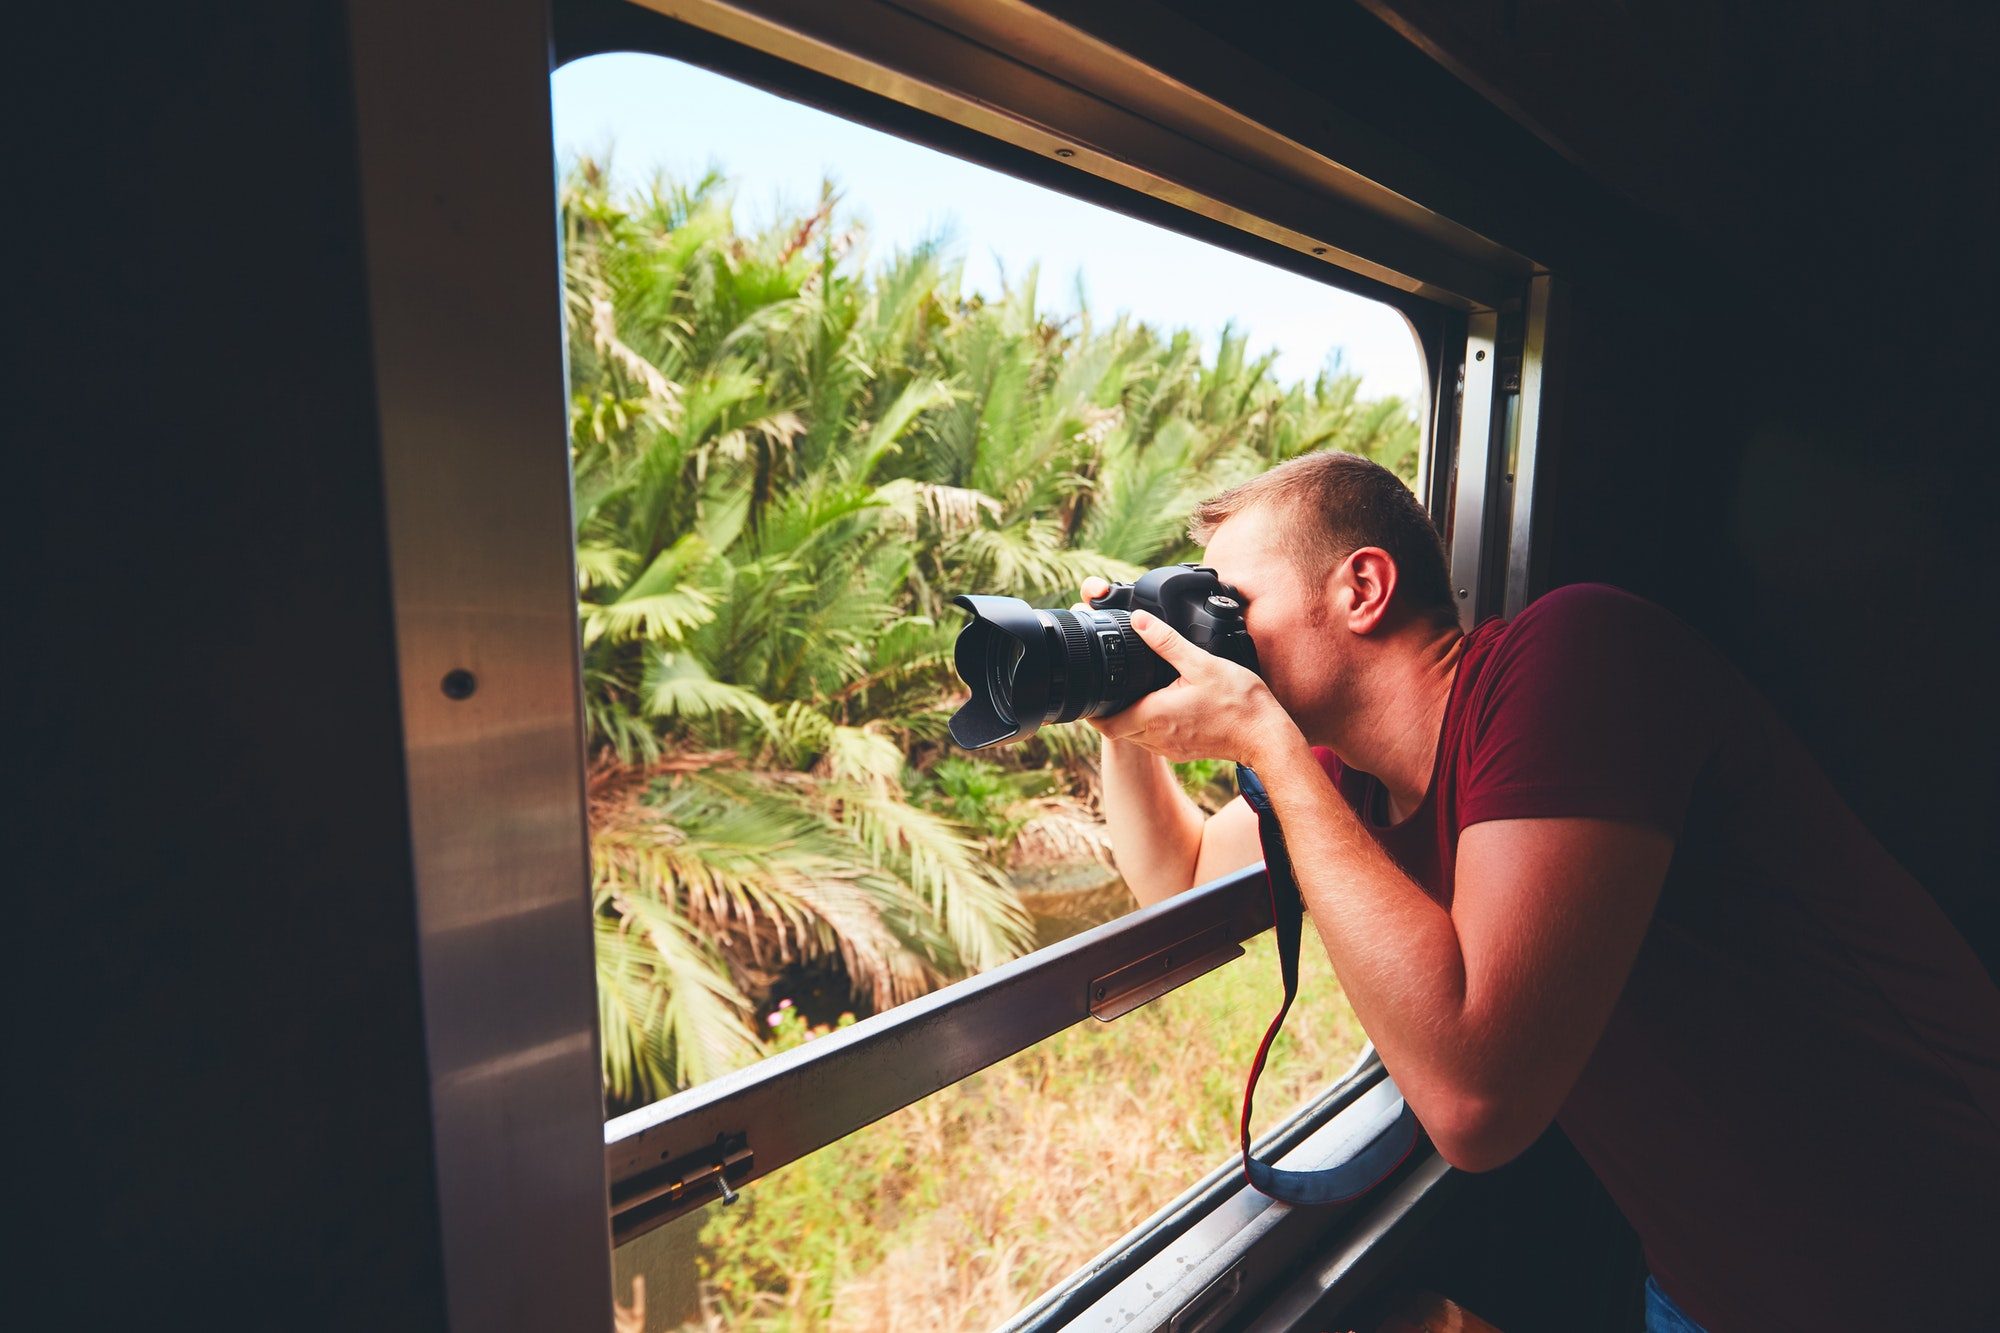 Man traveling by historical train